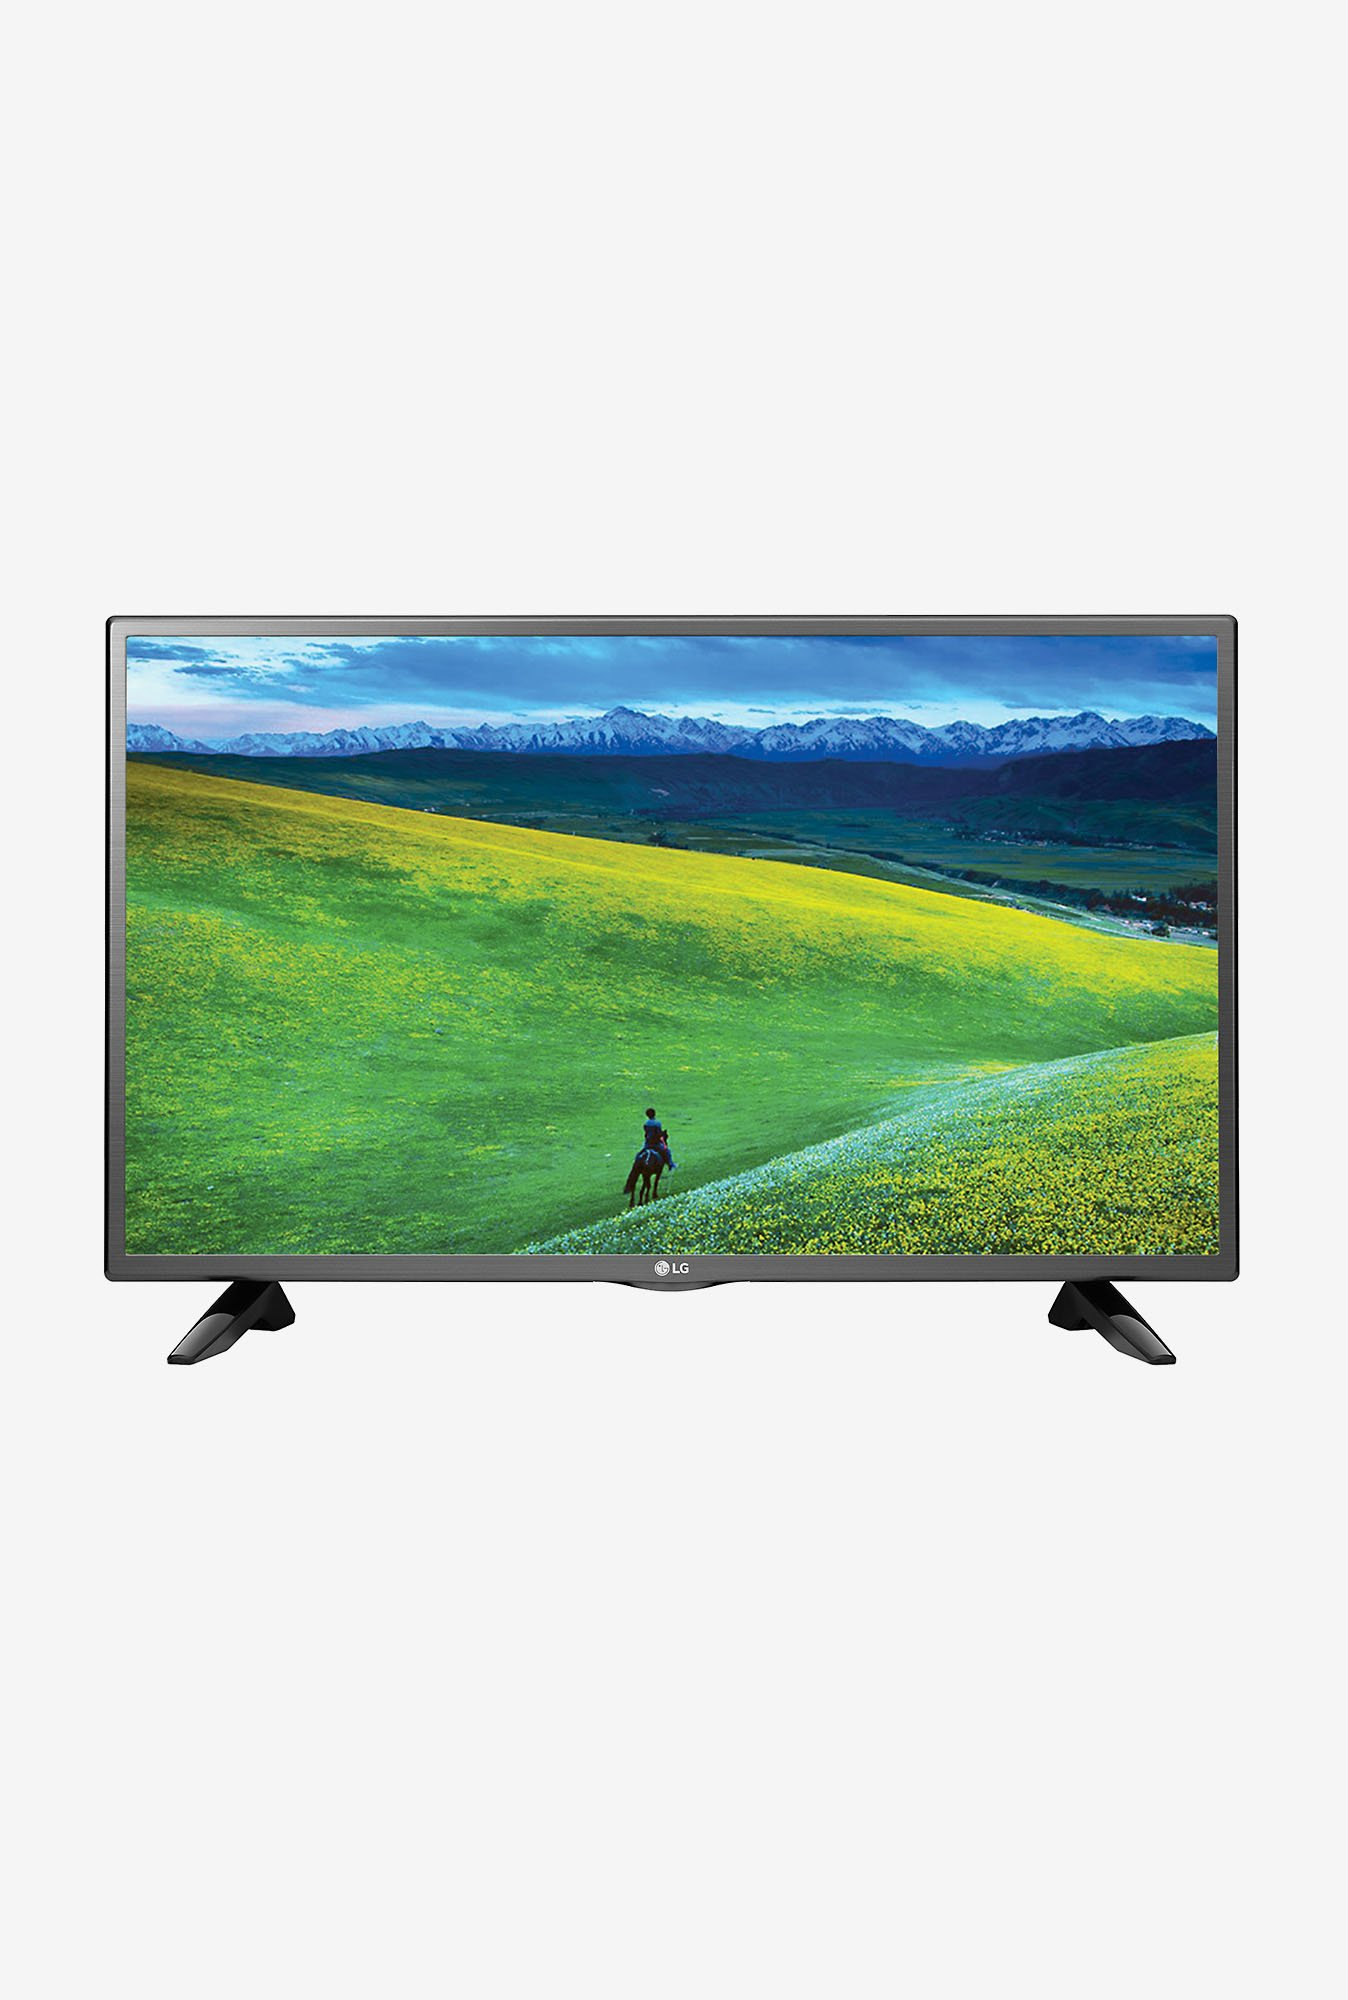 LG 32LH517A 80cm (32 inches) HD Ready Led TV (Black)